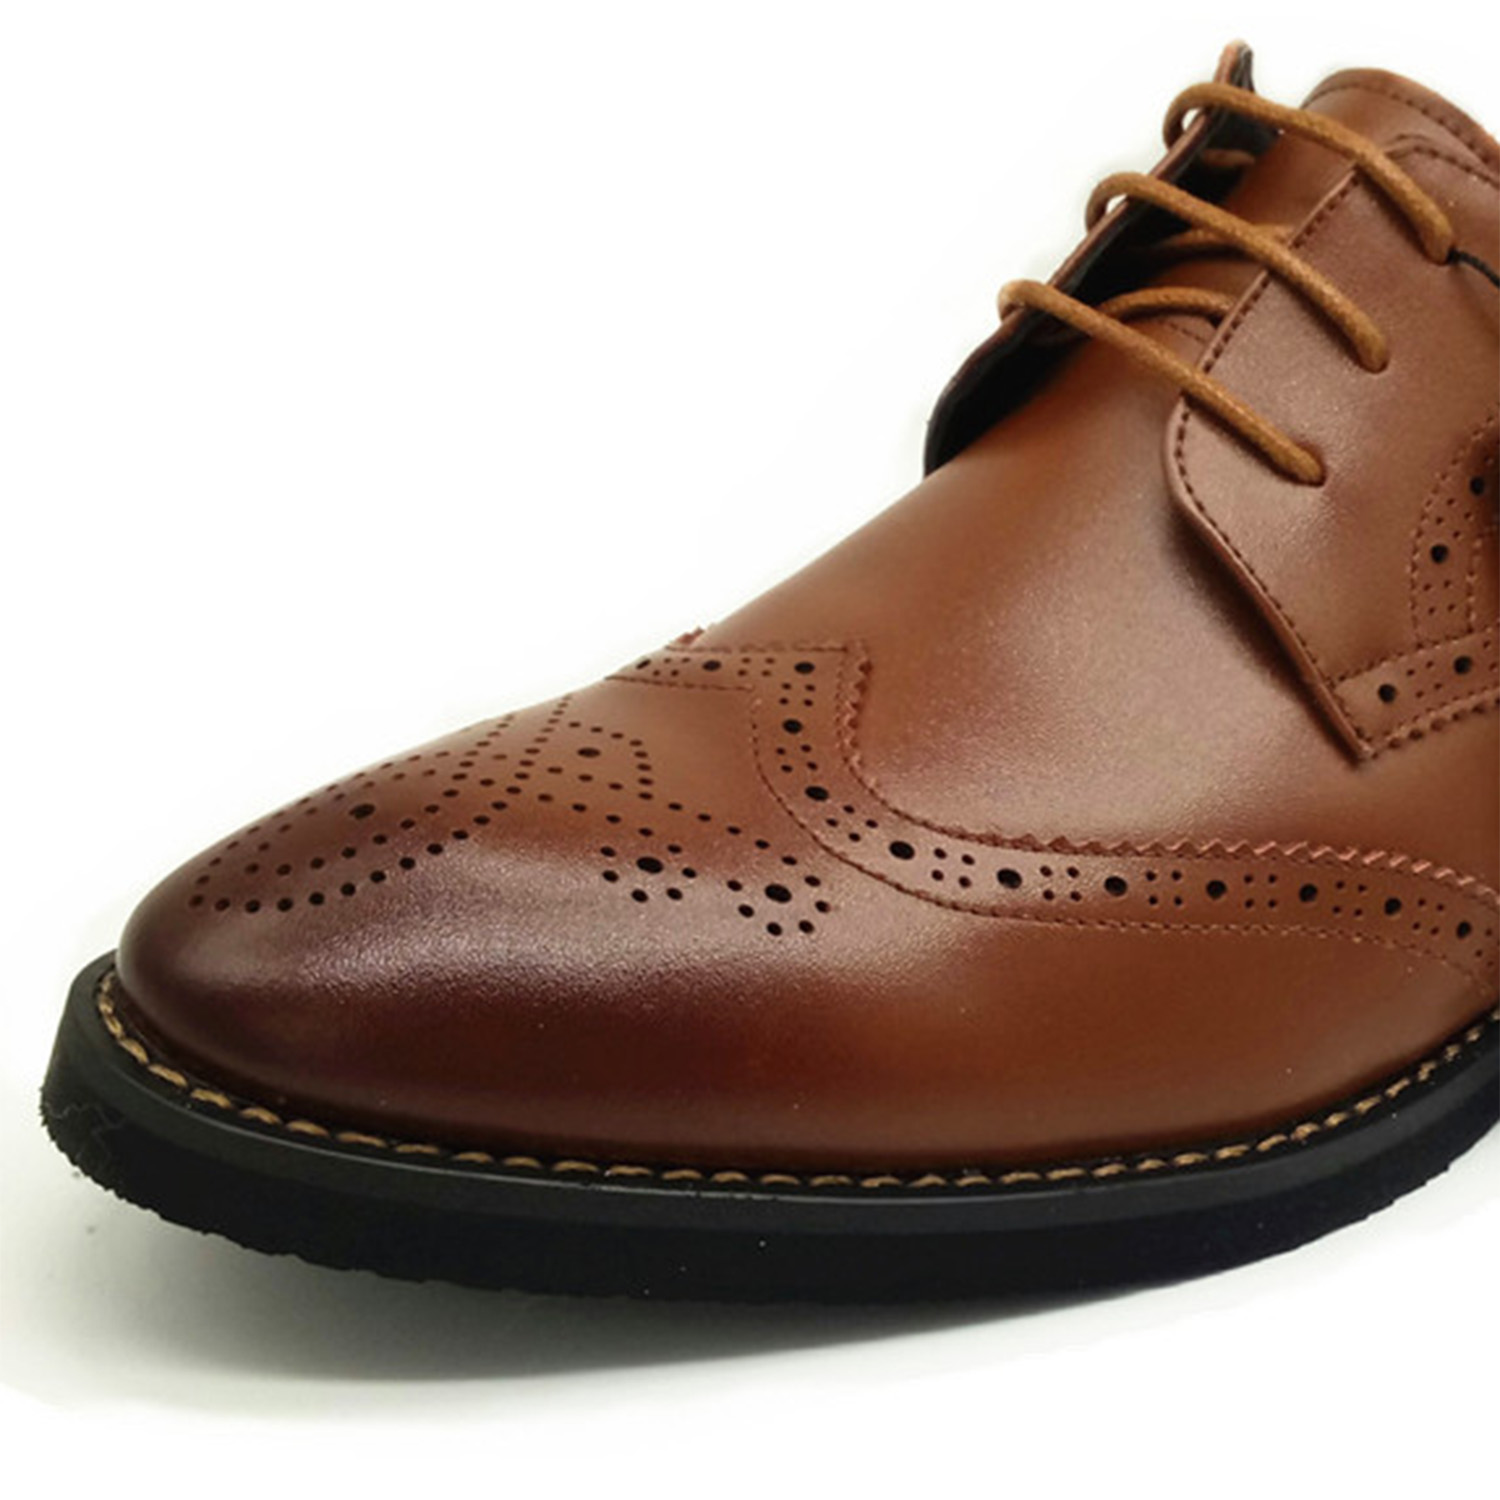 Luxury Design Oxford Business Men Shoes Genuine Leather High Quality - Men's Shoes - Photo 5